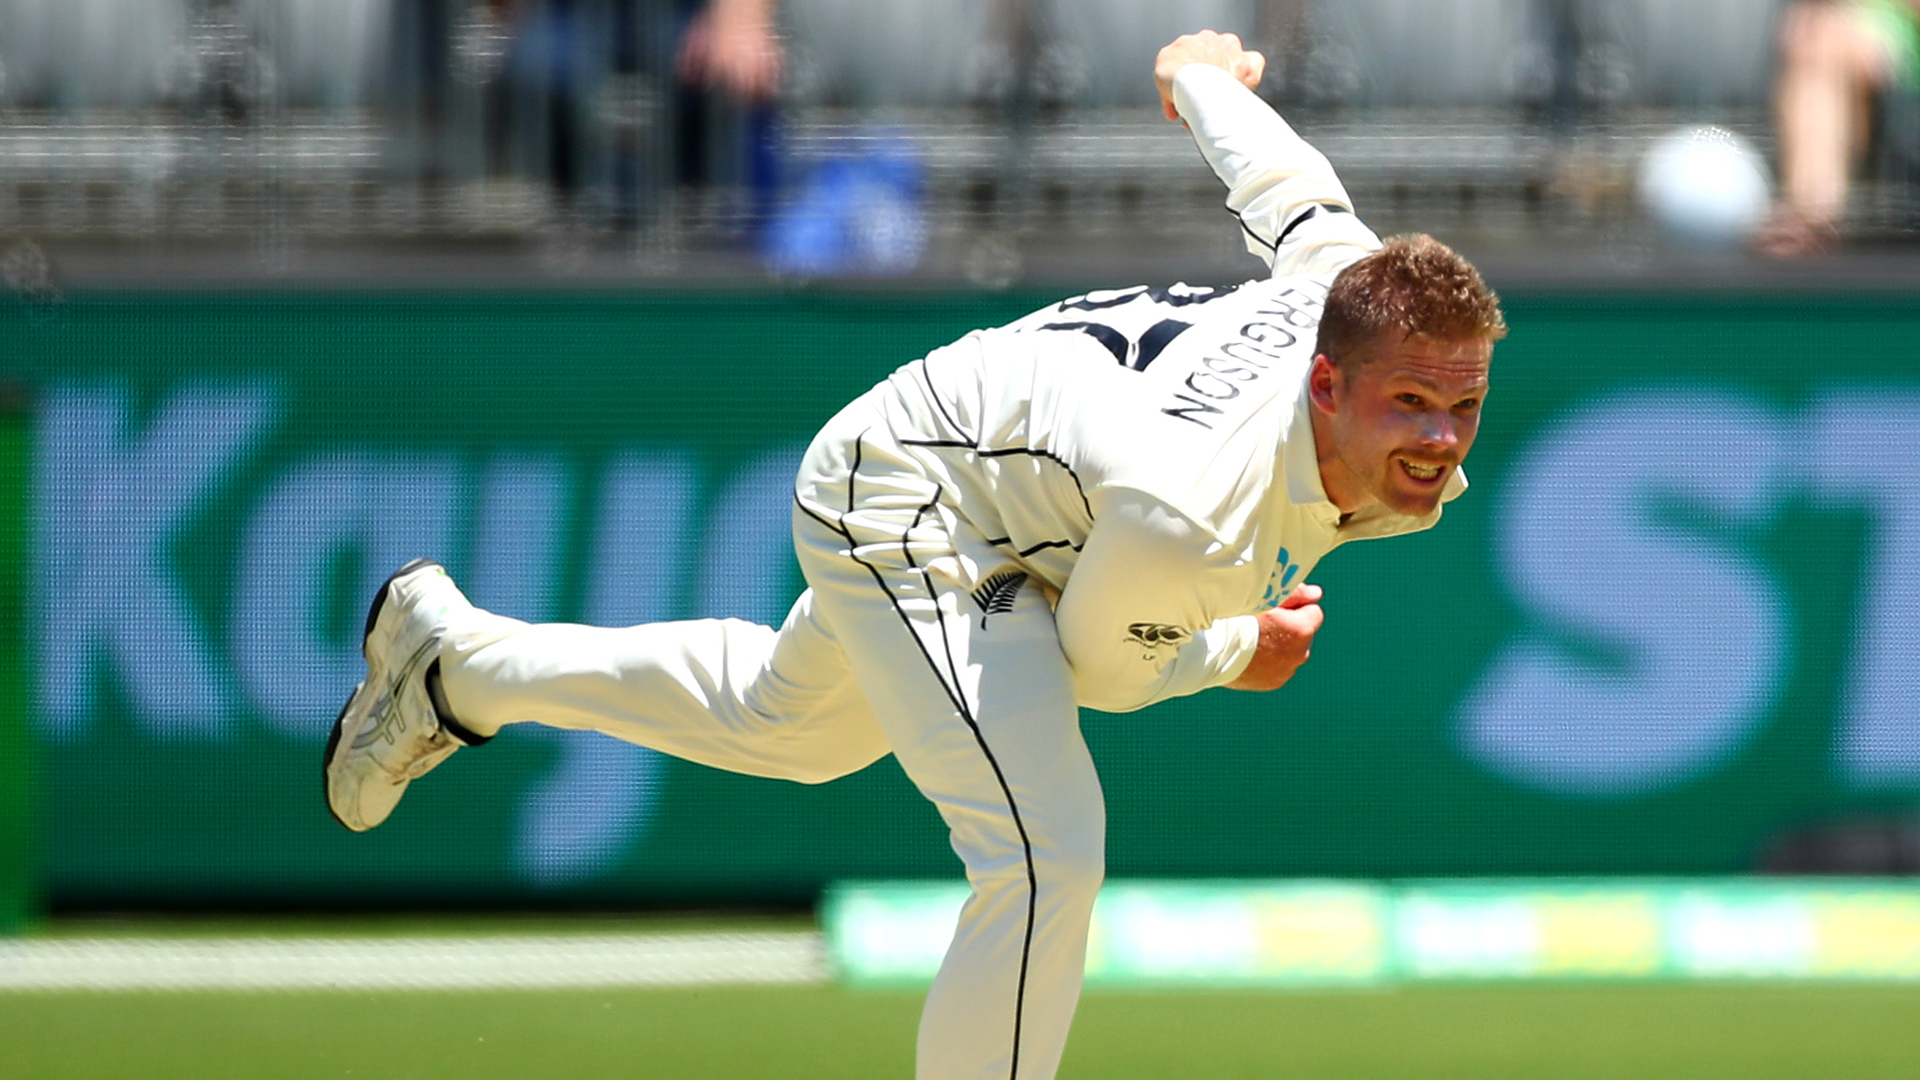 Ferguson won't bowl for rest of first Test due to calf strain